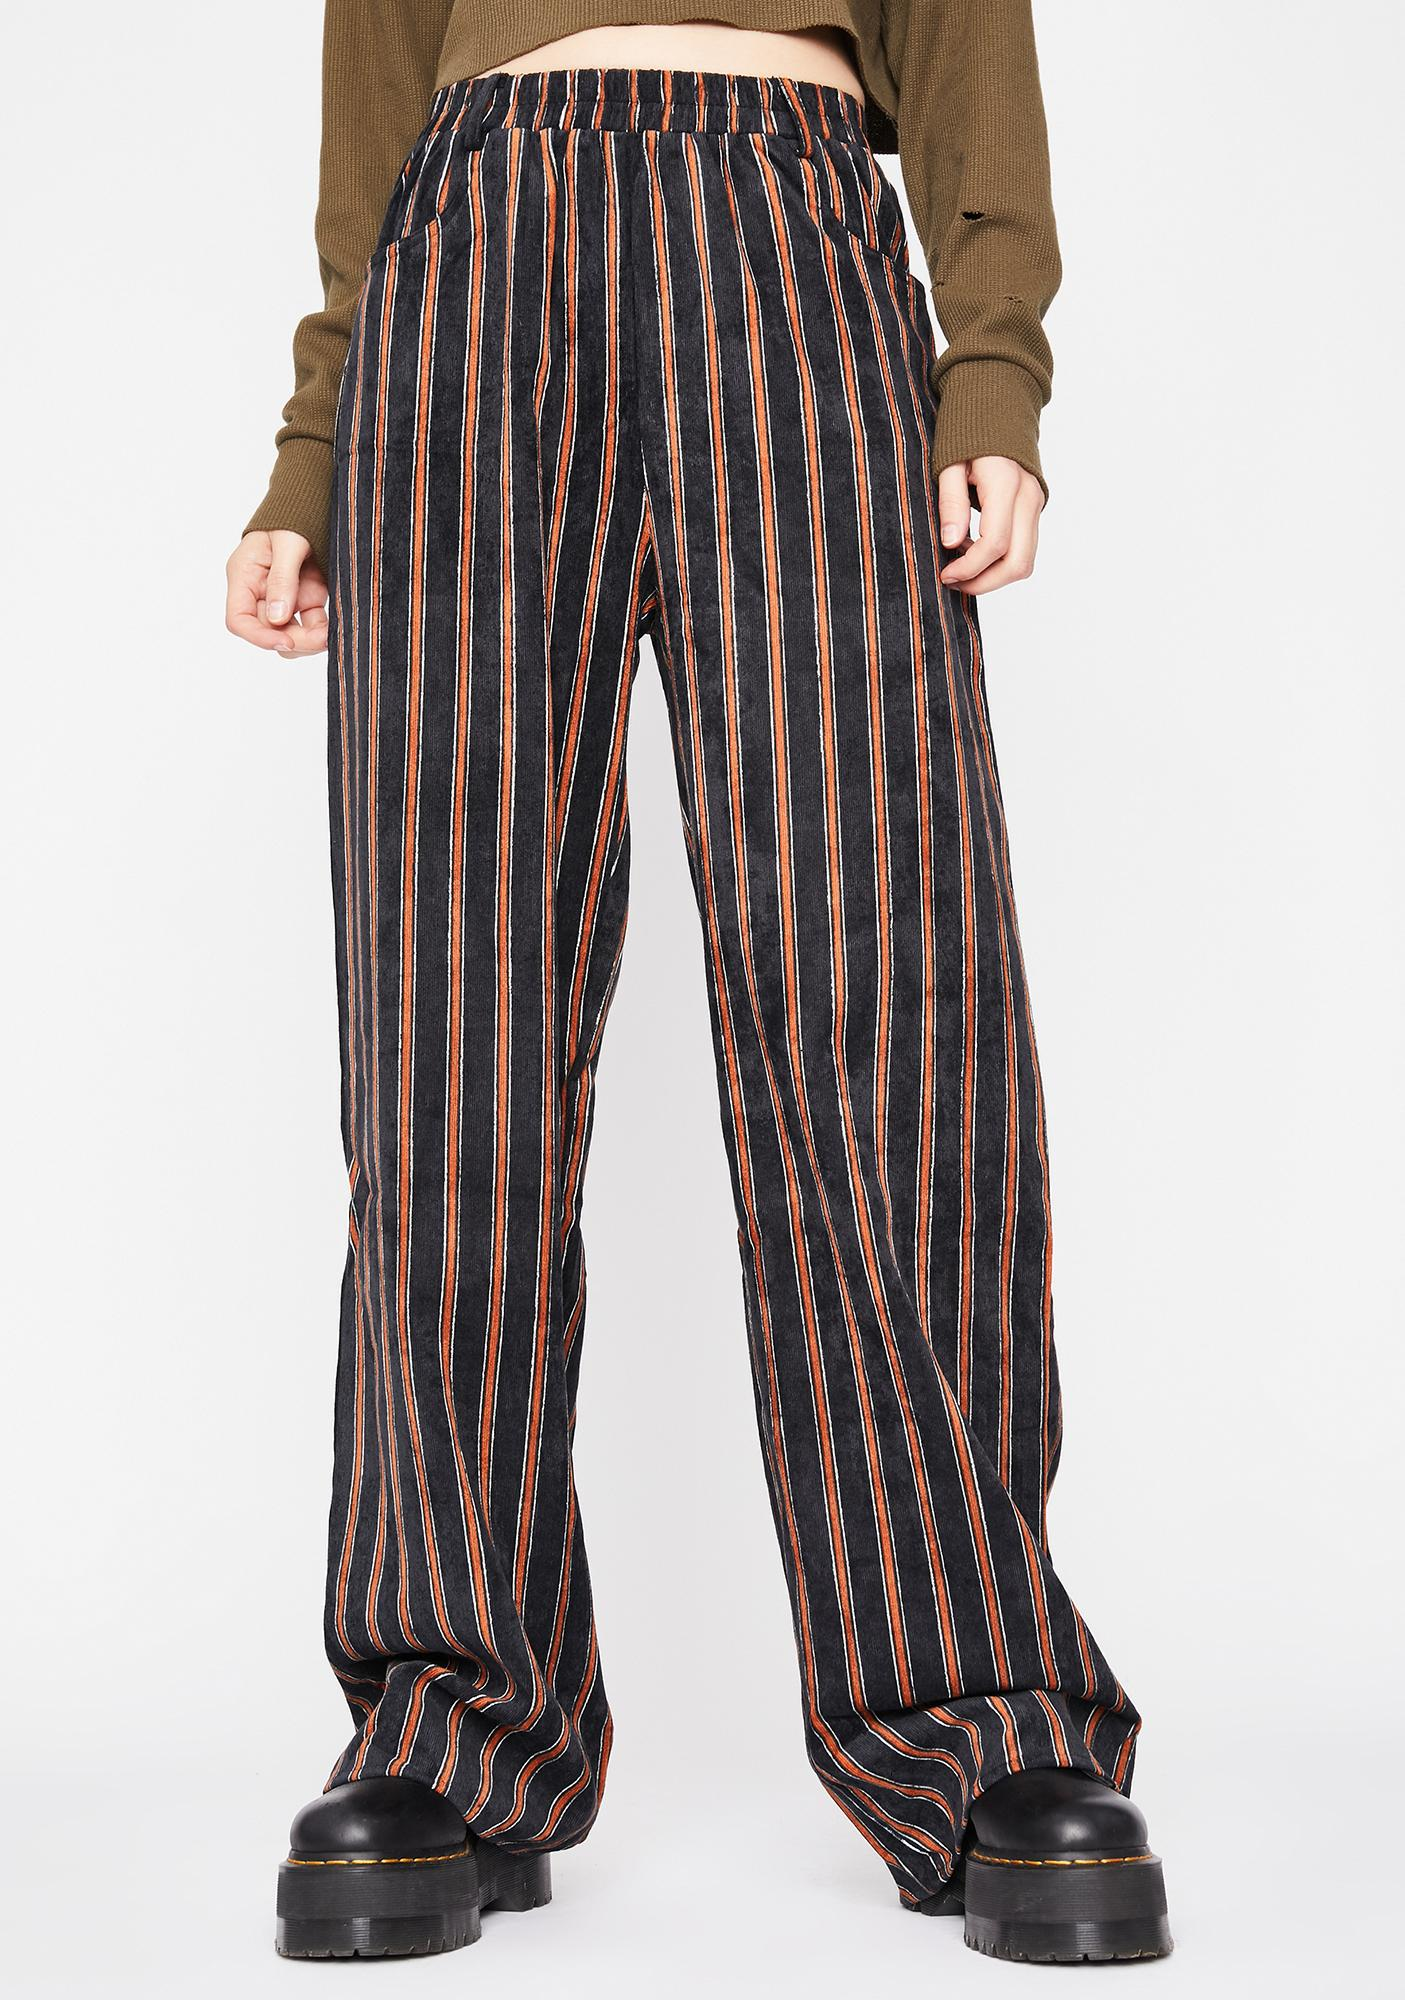 Keep It Real Corduroy Pants